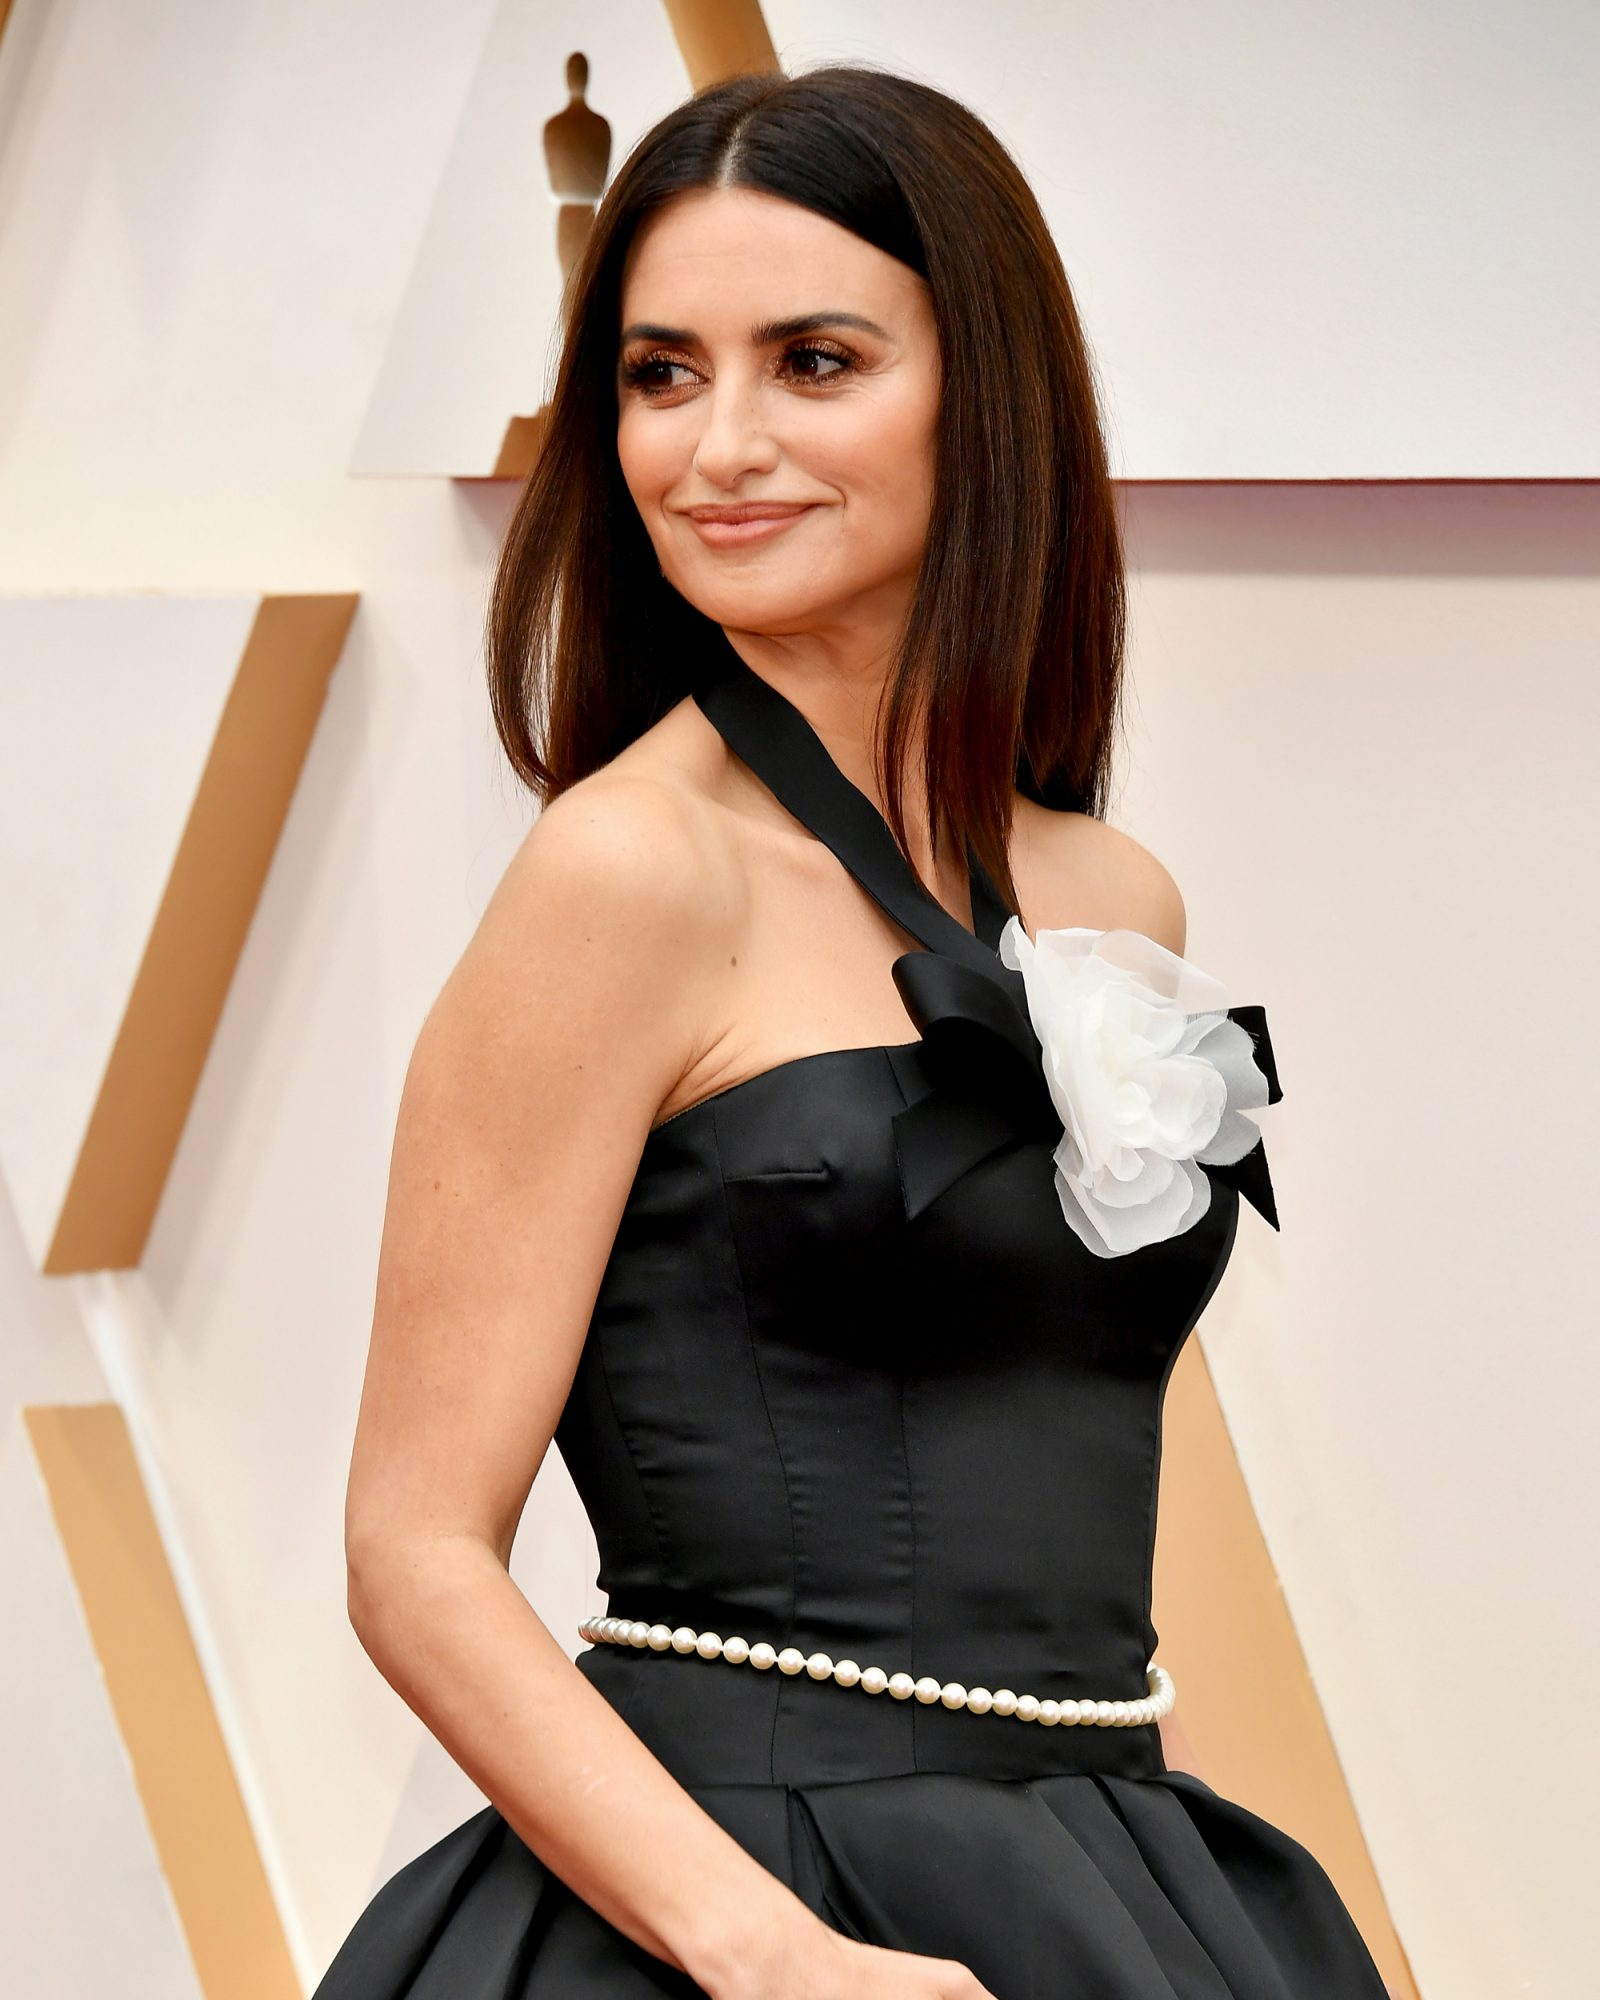 Nordstrom Shoppers Are Obsessed With the Anti-Aging Serum Penelope Cruz Used at the Oscars